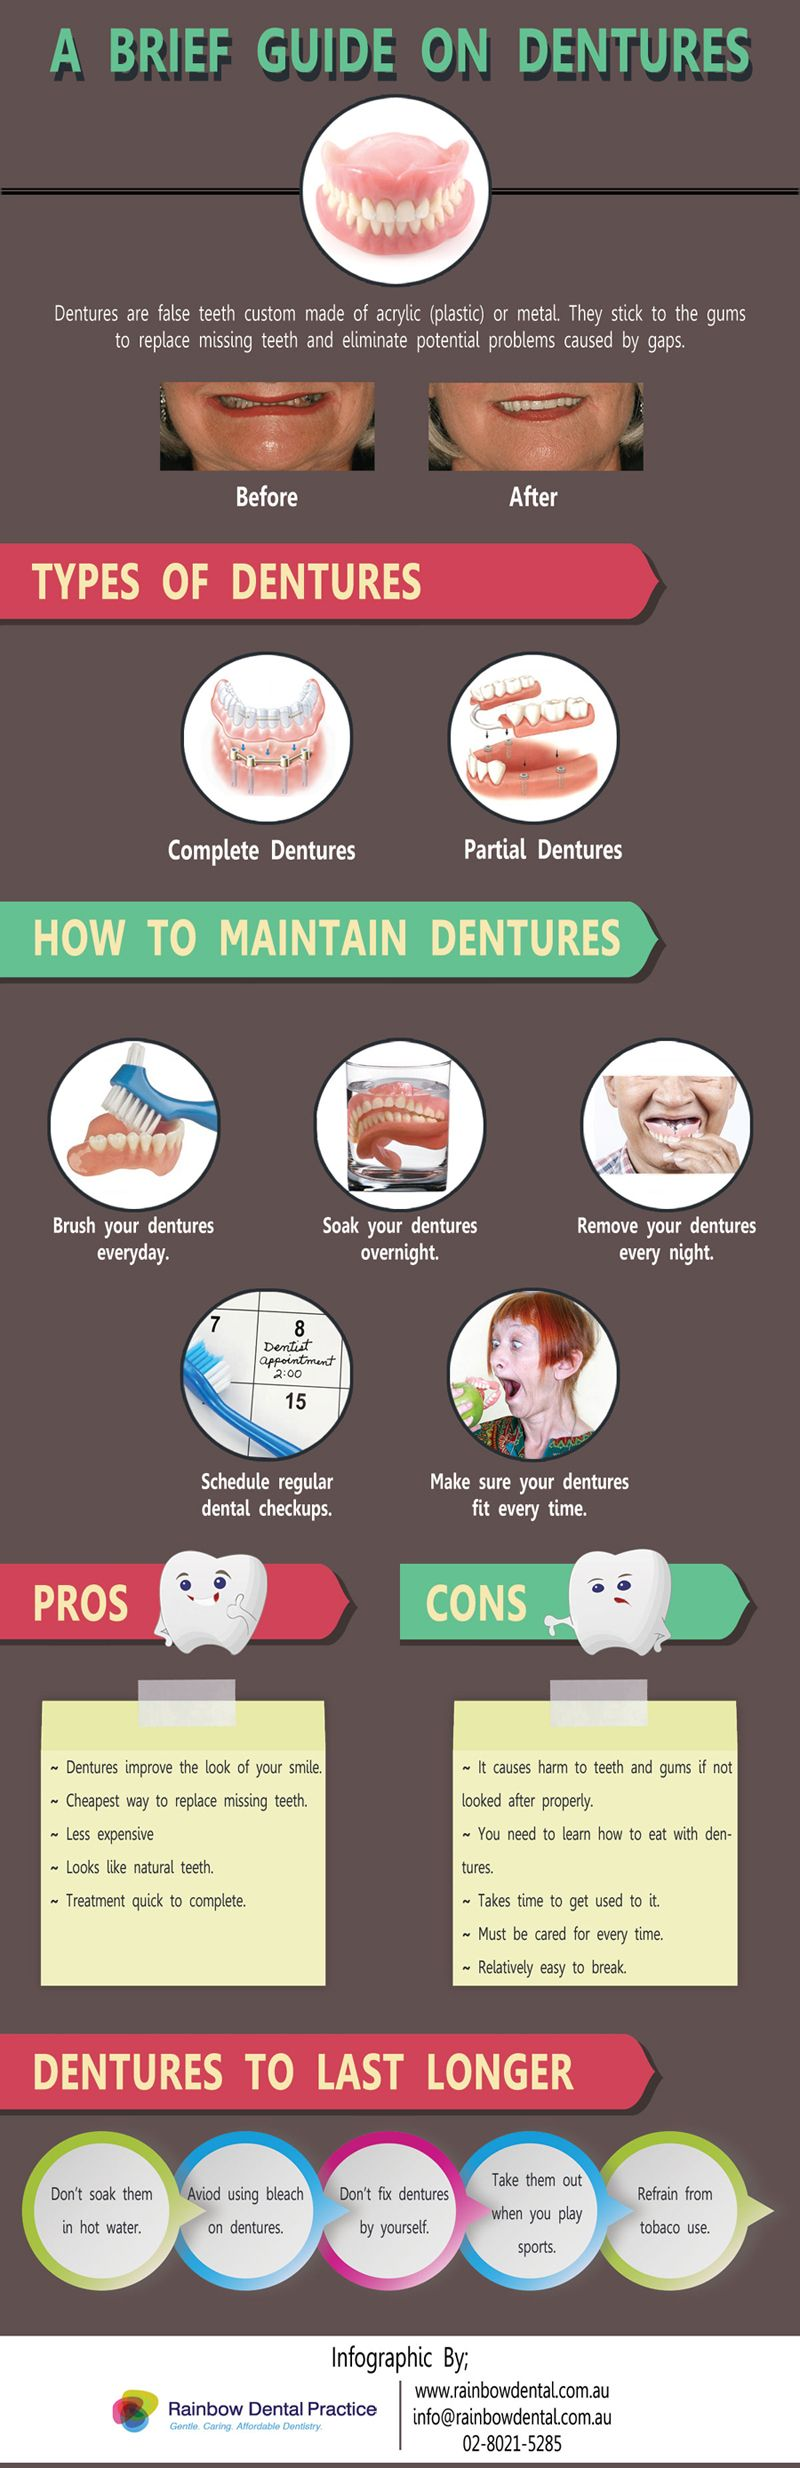 full dentures cost with insurance